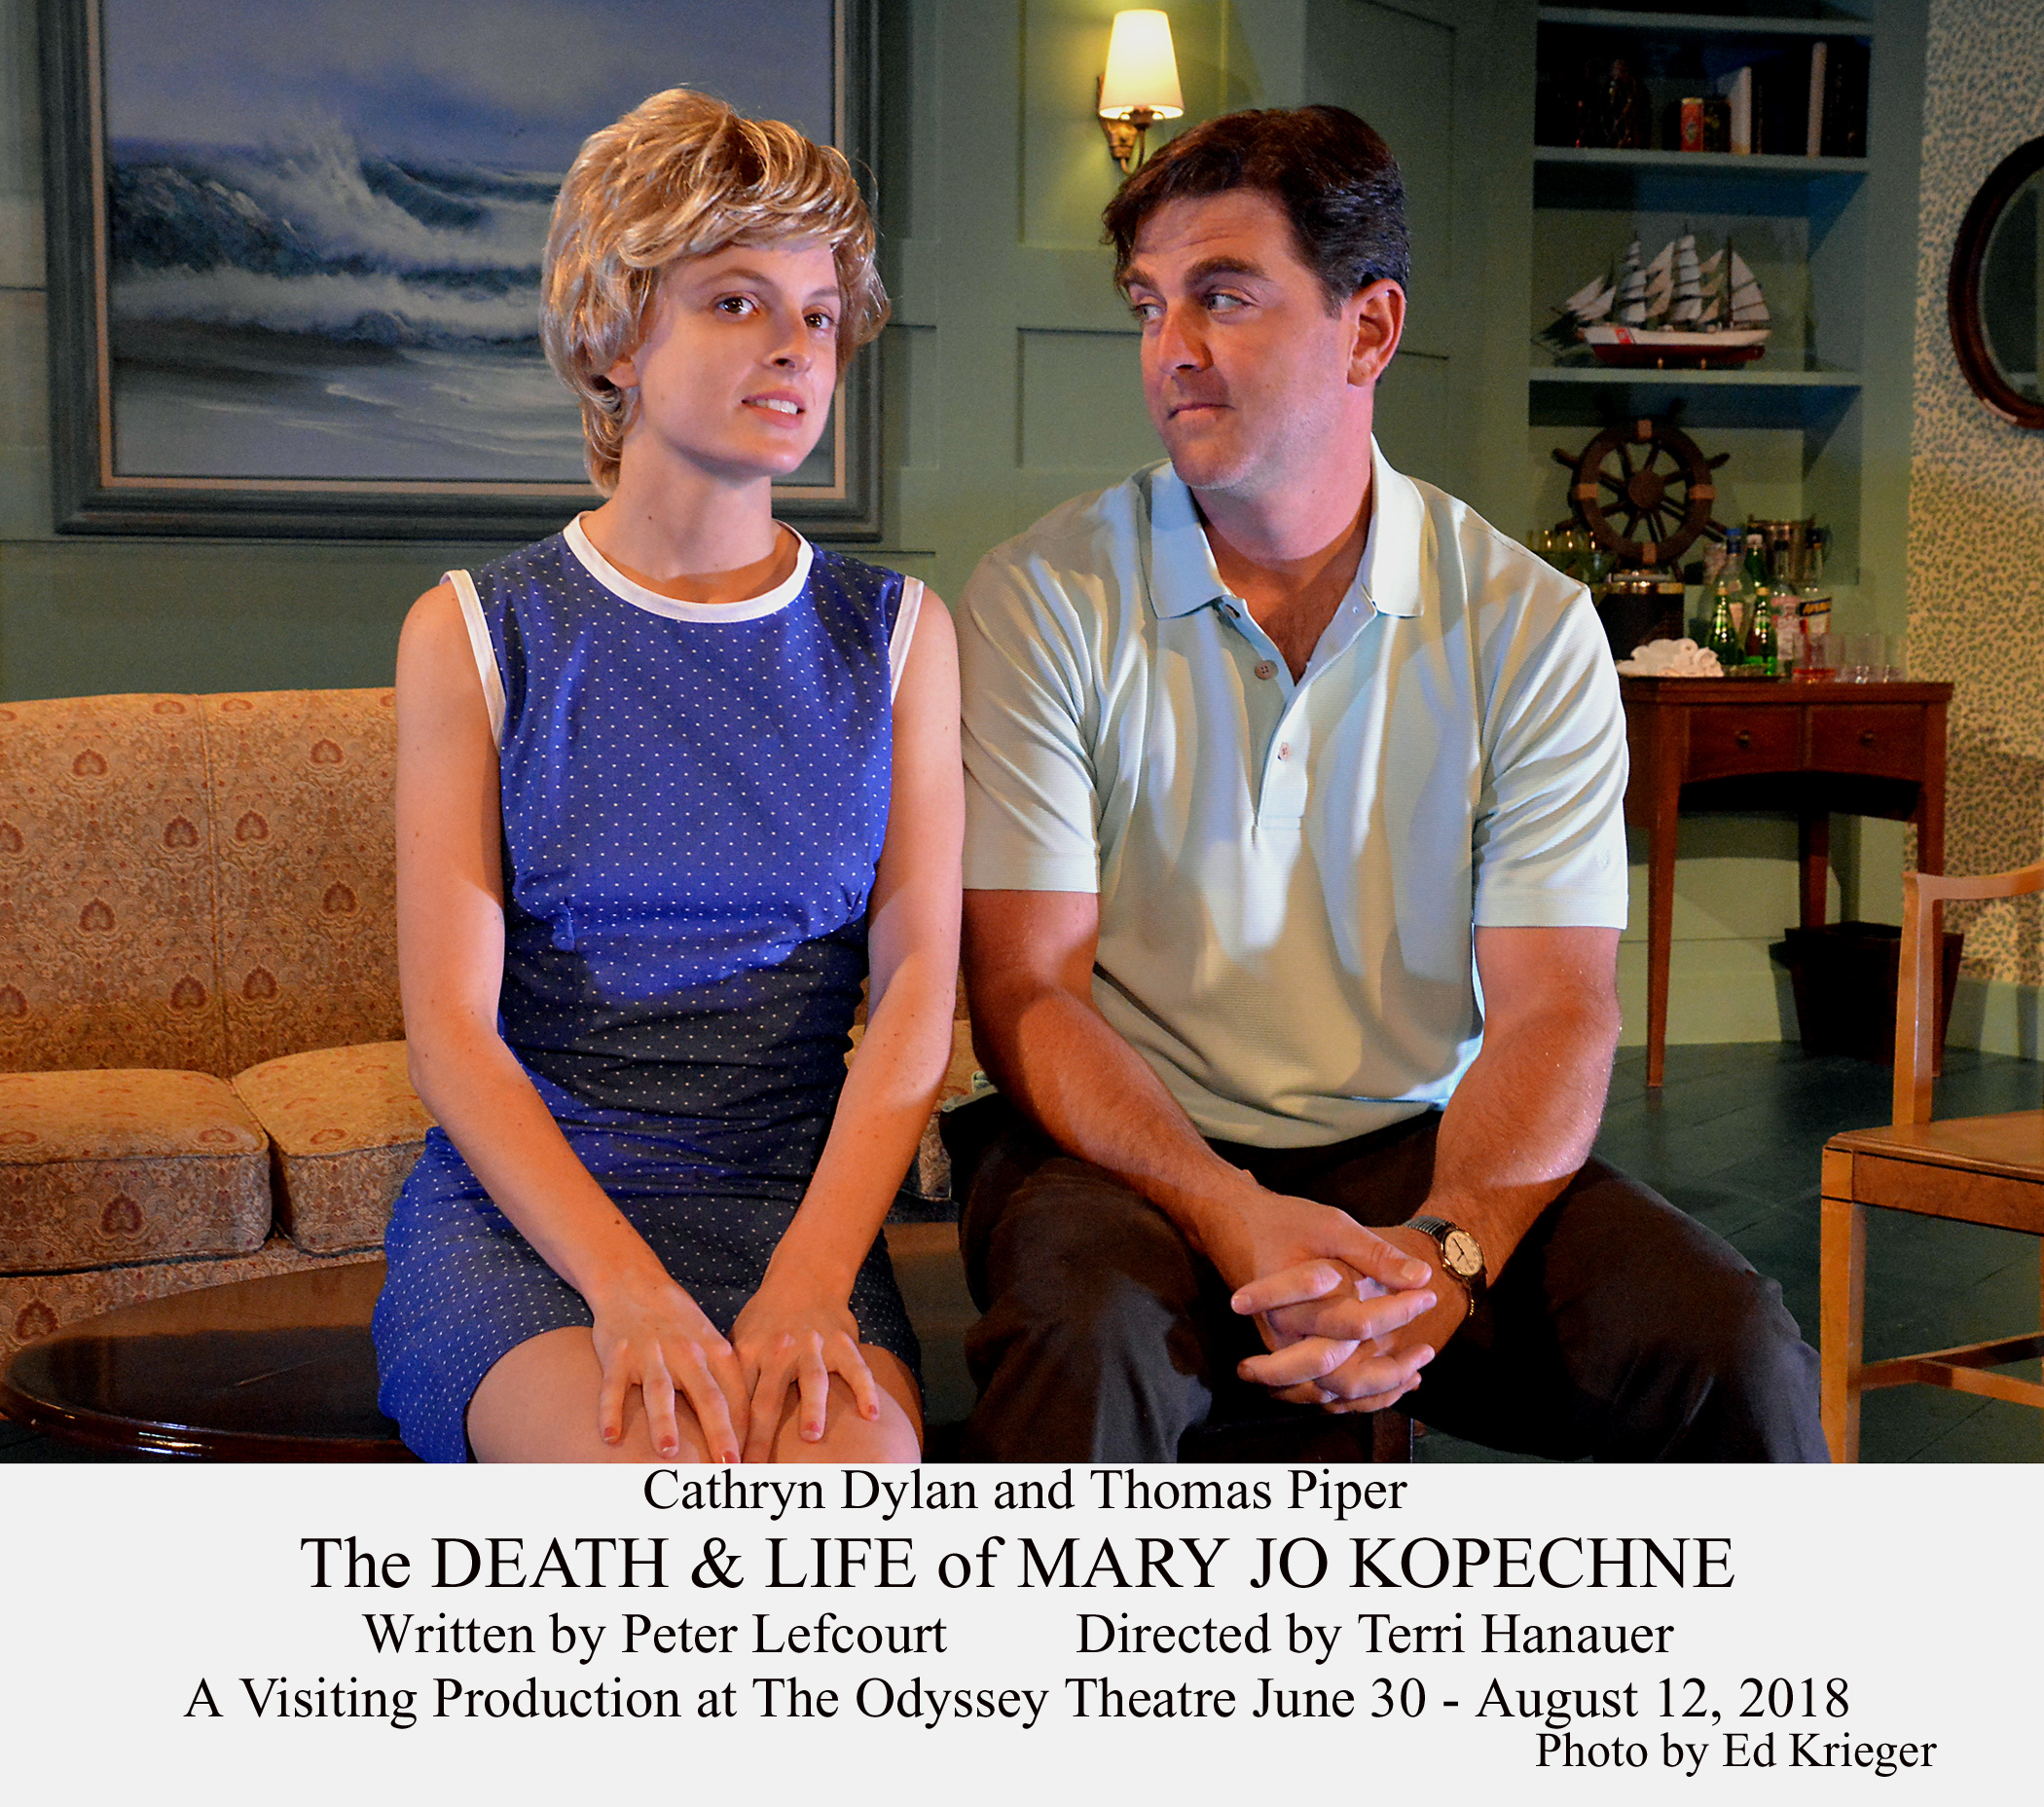 the death and life of mary jo kopechne reviewed by rob stevens